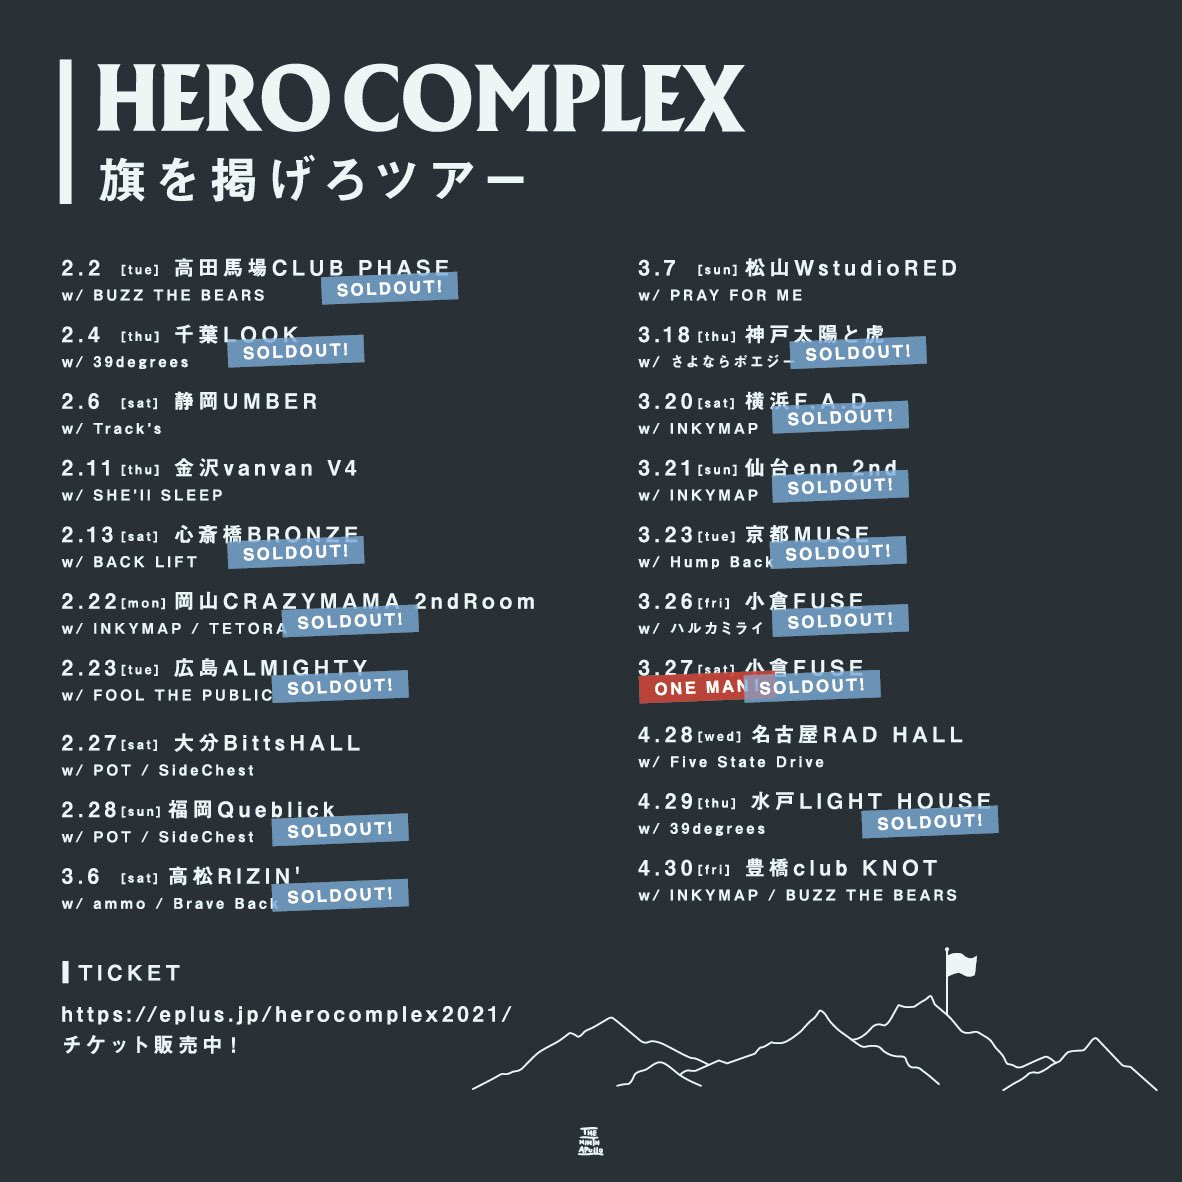 HERO COMPLEX 旗を掲げろツアー